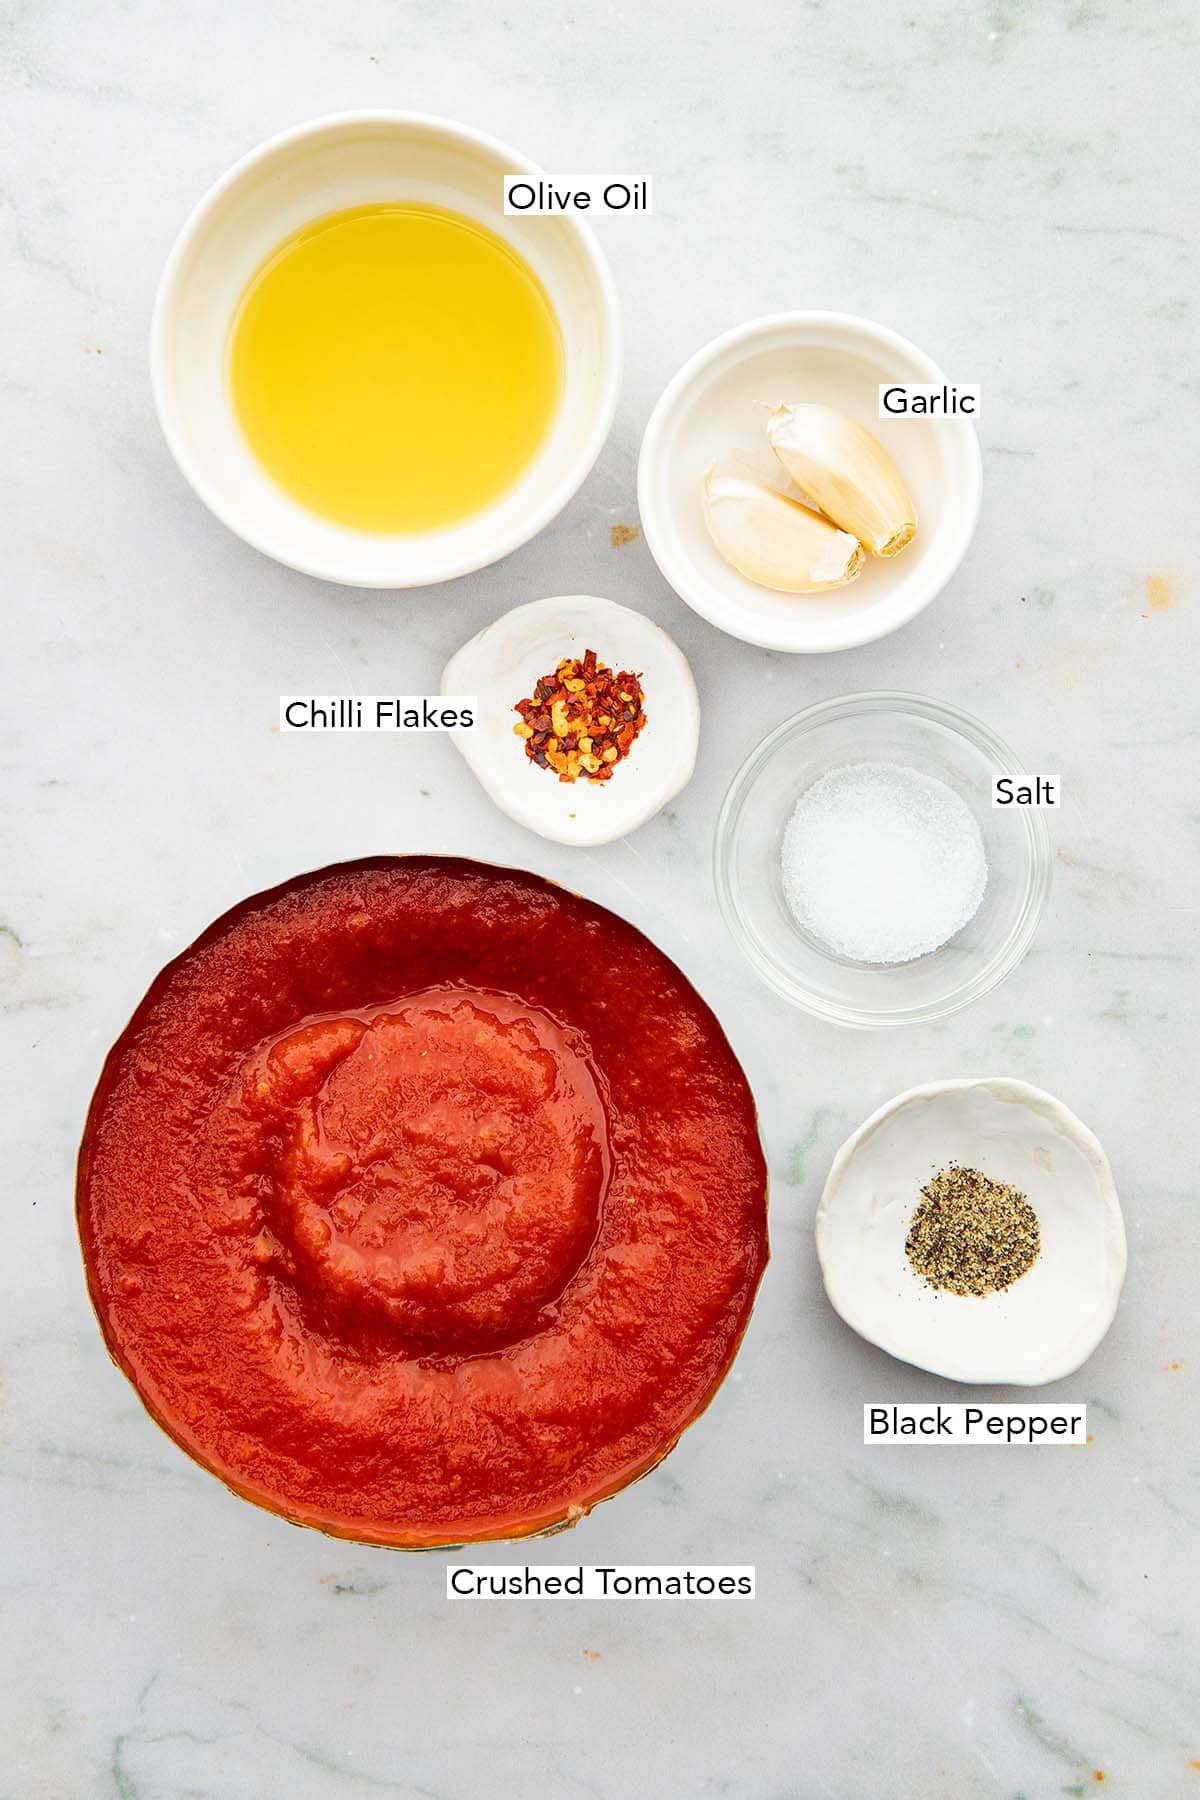 Ingredients to make homemade tomato sauce.